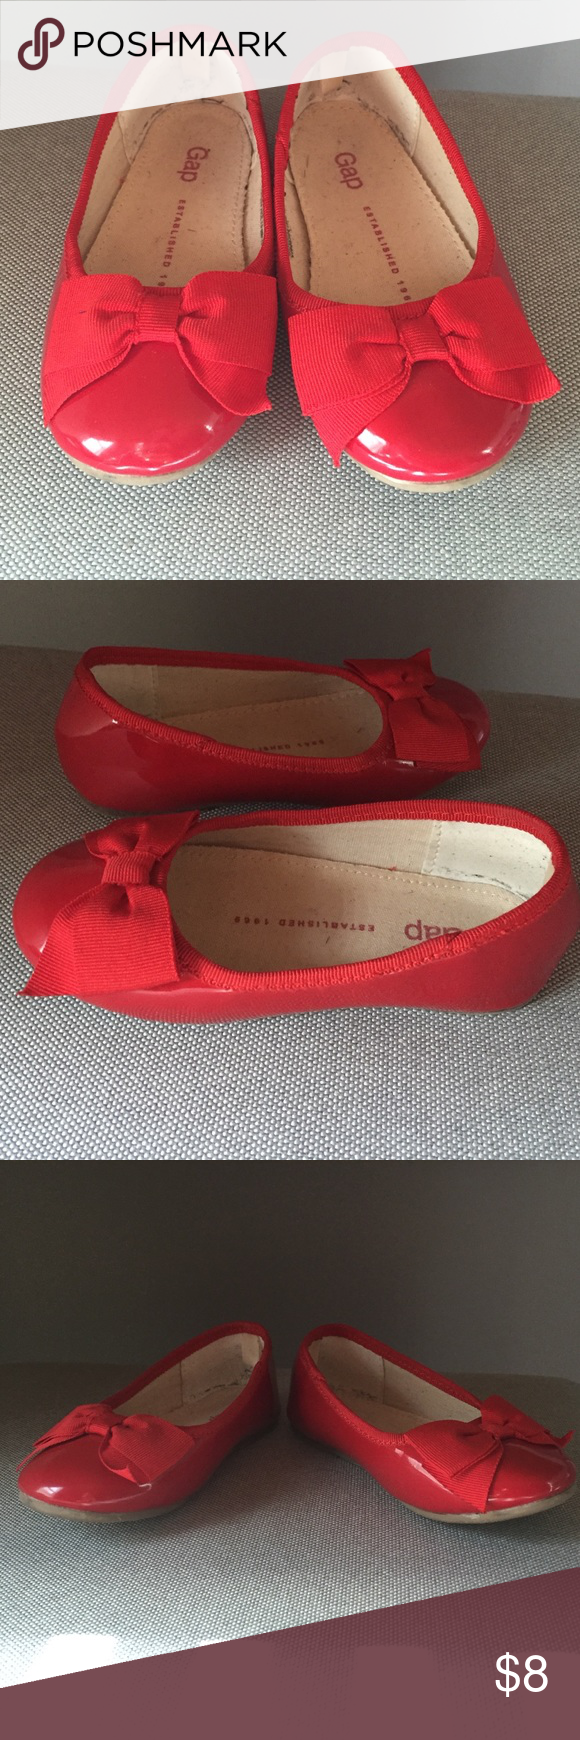 4d1d035a662e ... Patent Leather Bow Flats are perfect for toddler girls to wear with  upcoming holiday wear. Only worn once...my daughter outdrew them quickly.  GAP Shoes ...